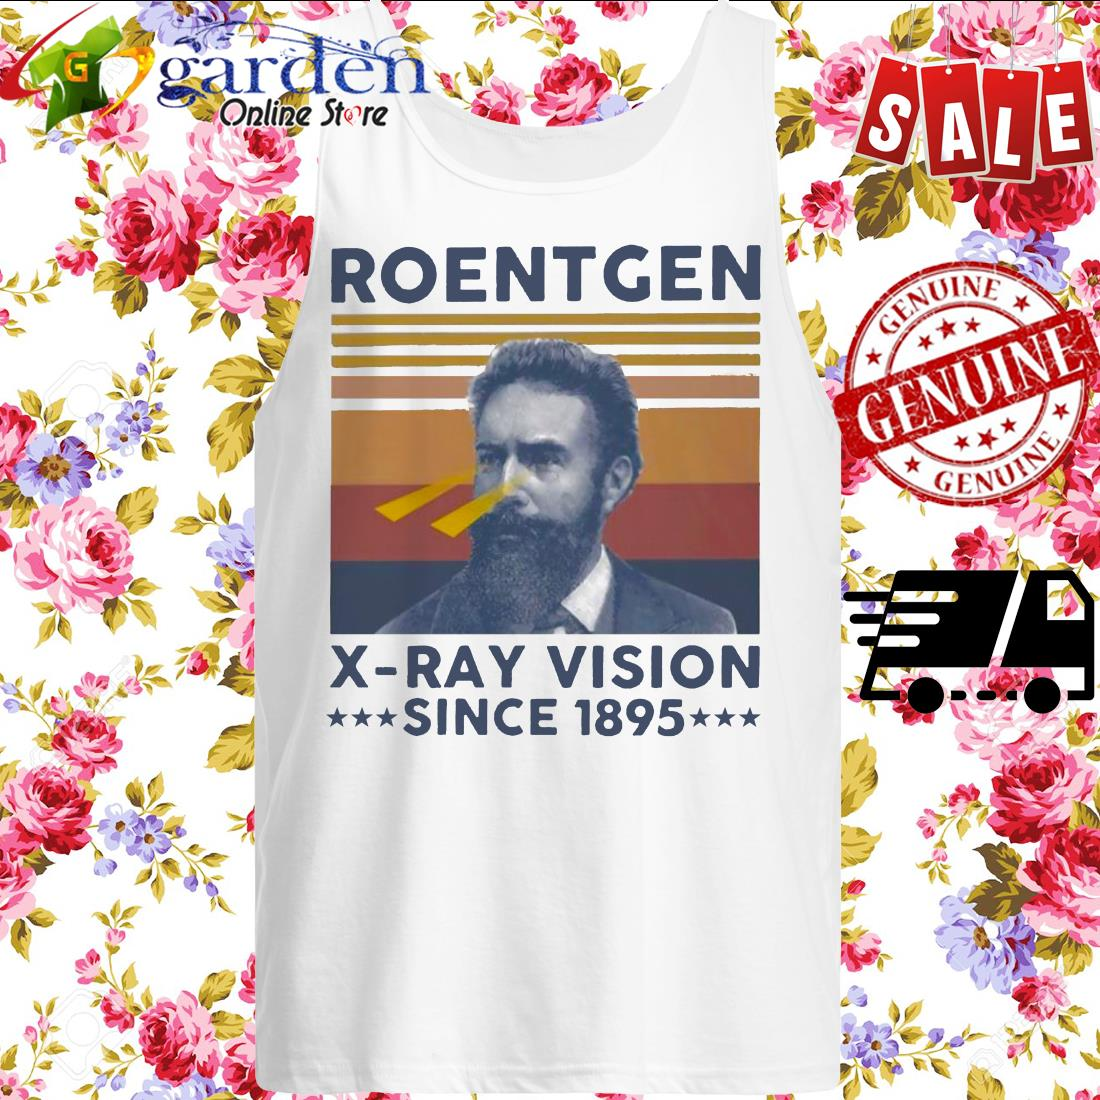 Roentgen X ray vision since 1895 vintage sweater